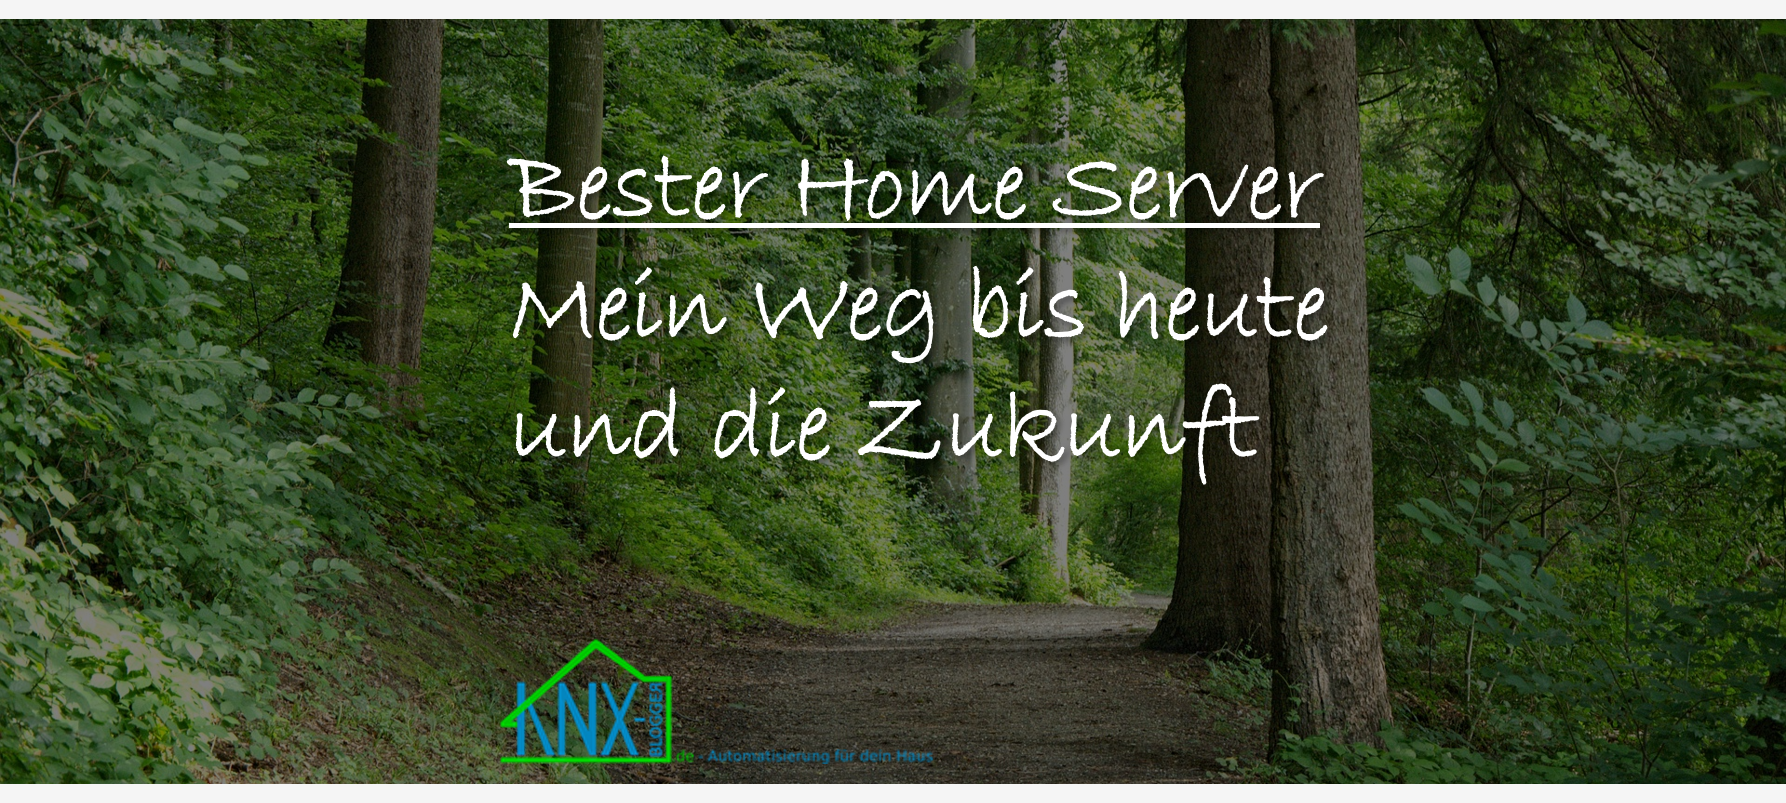 der beste Home Server Titelbild